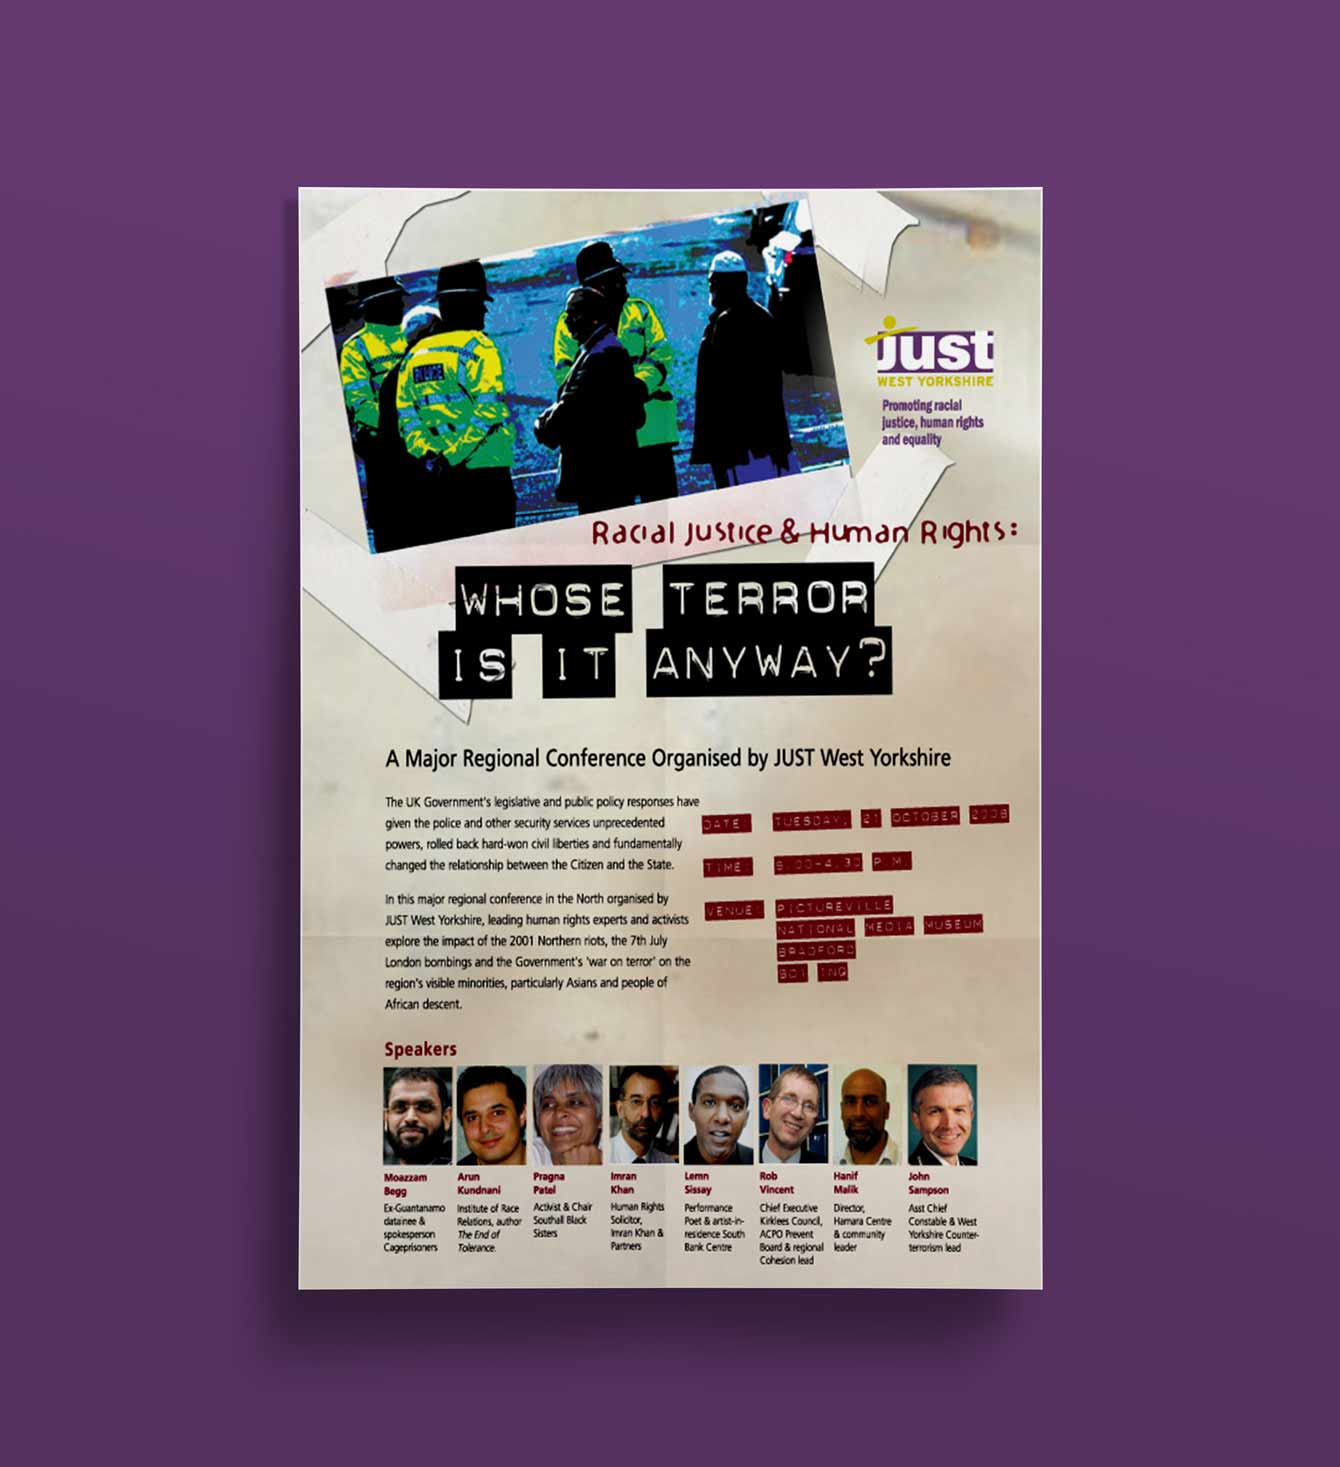 Whose Terror is it anyway Poster - JUST West Yorkshire